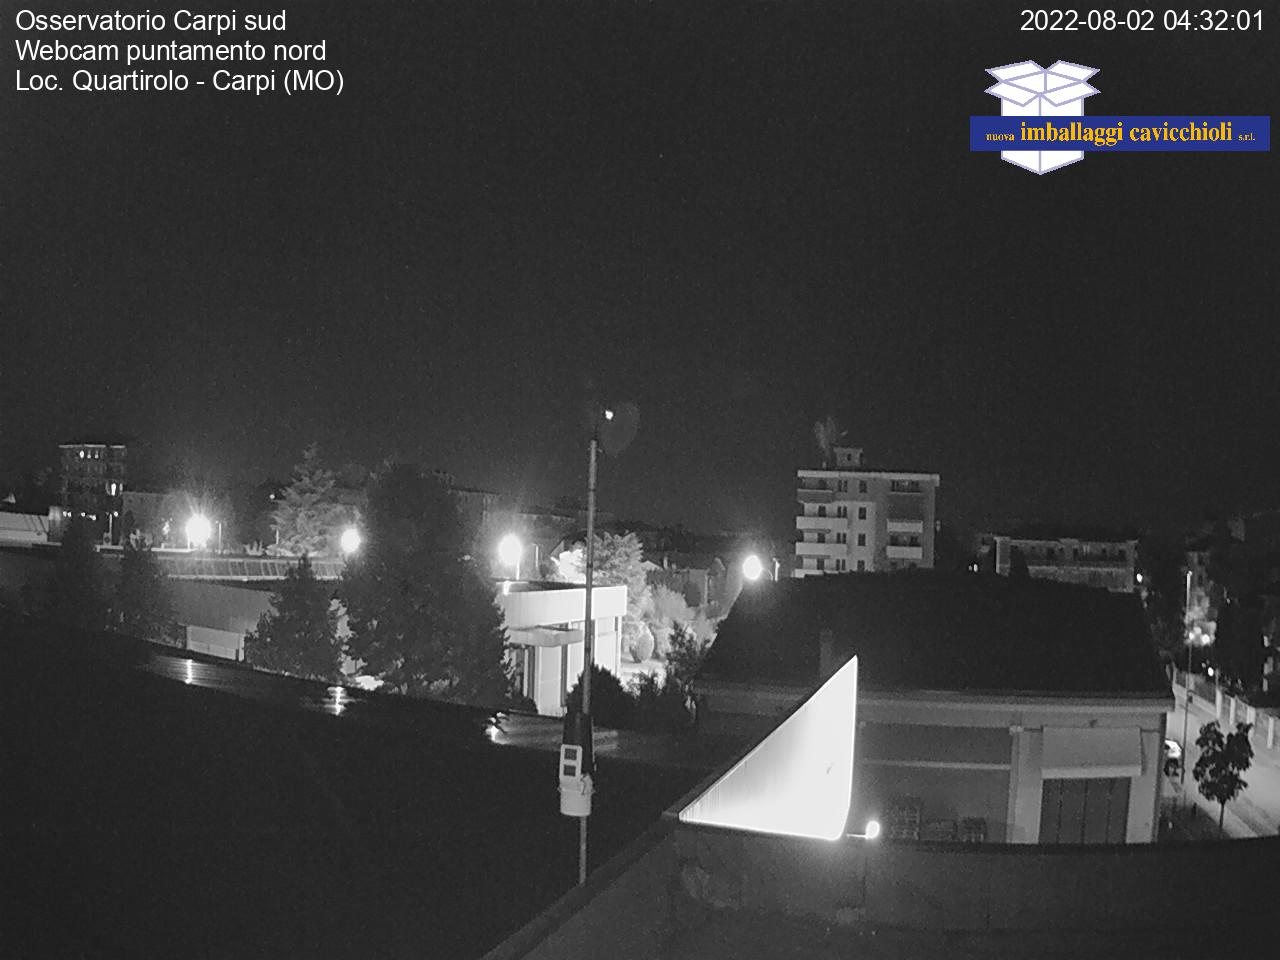 Osservatorio Carpi sud<br>Webcam puntamento nord<br>Loc. Quartirolo - Carpi (MO)